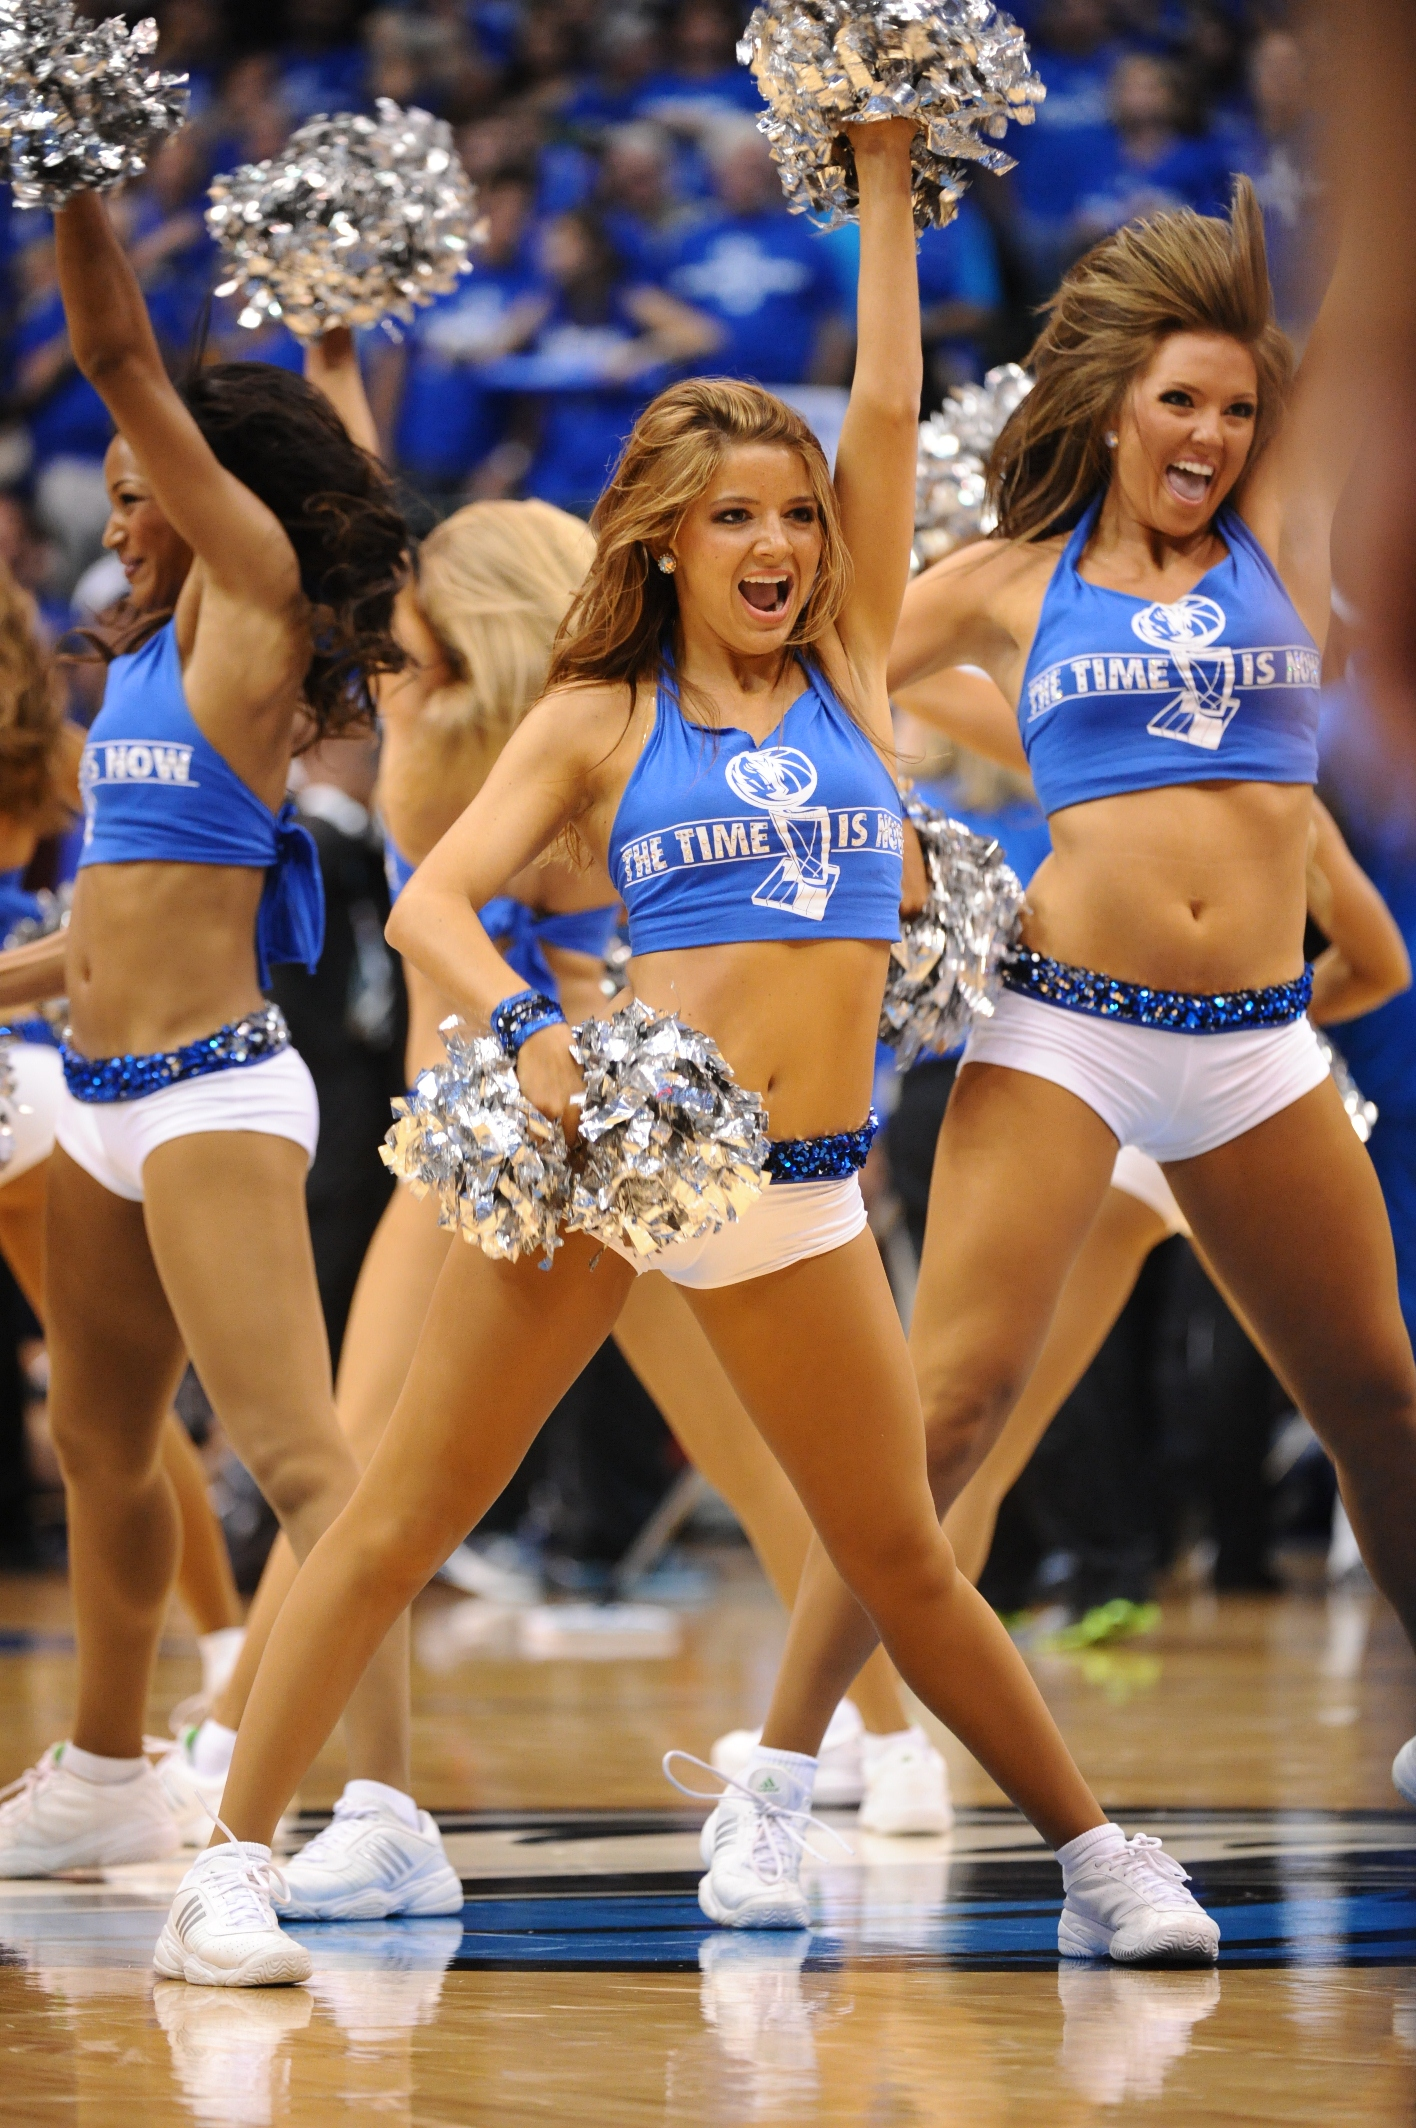 115548778 10 NBA FAN ZONE  domani a Milano, basket e cheerleaders!